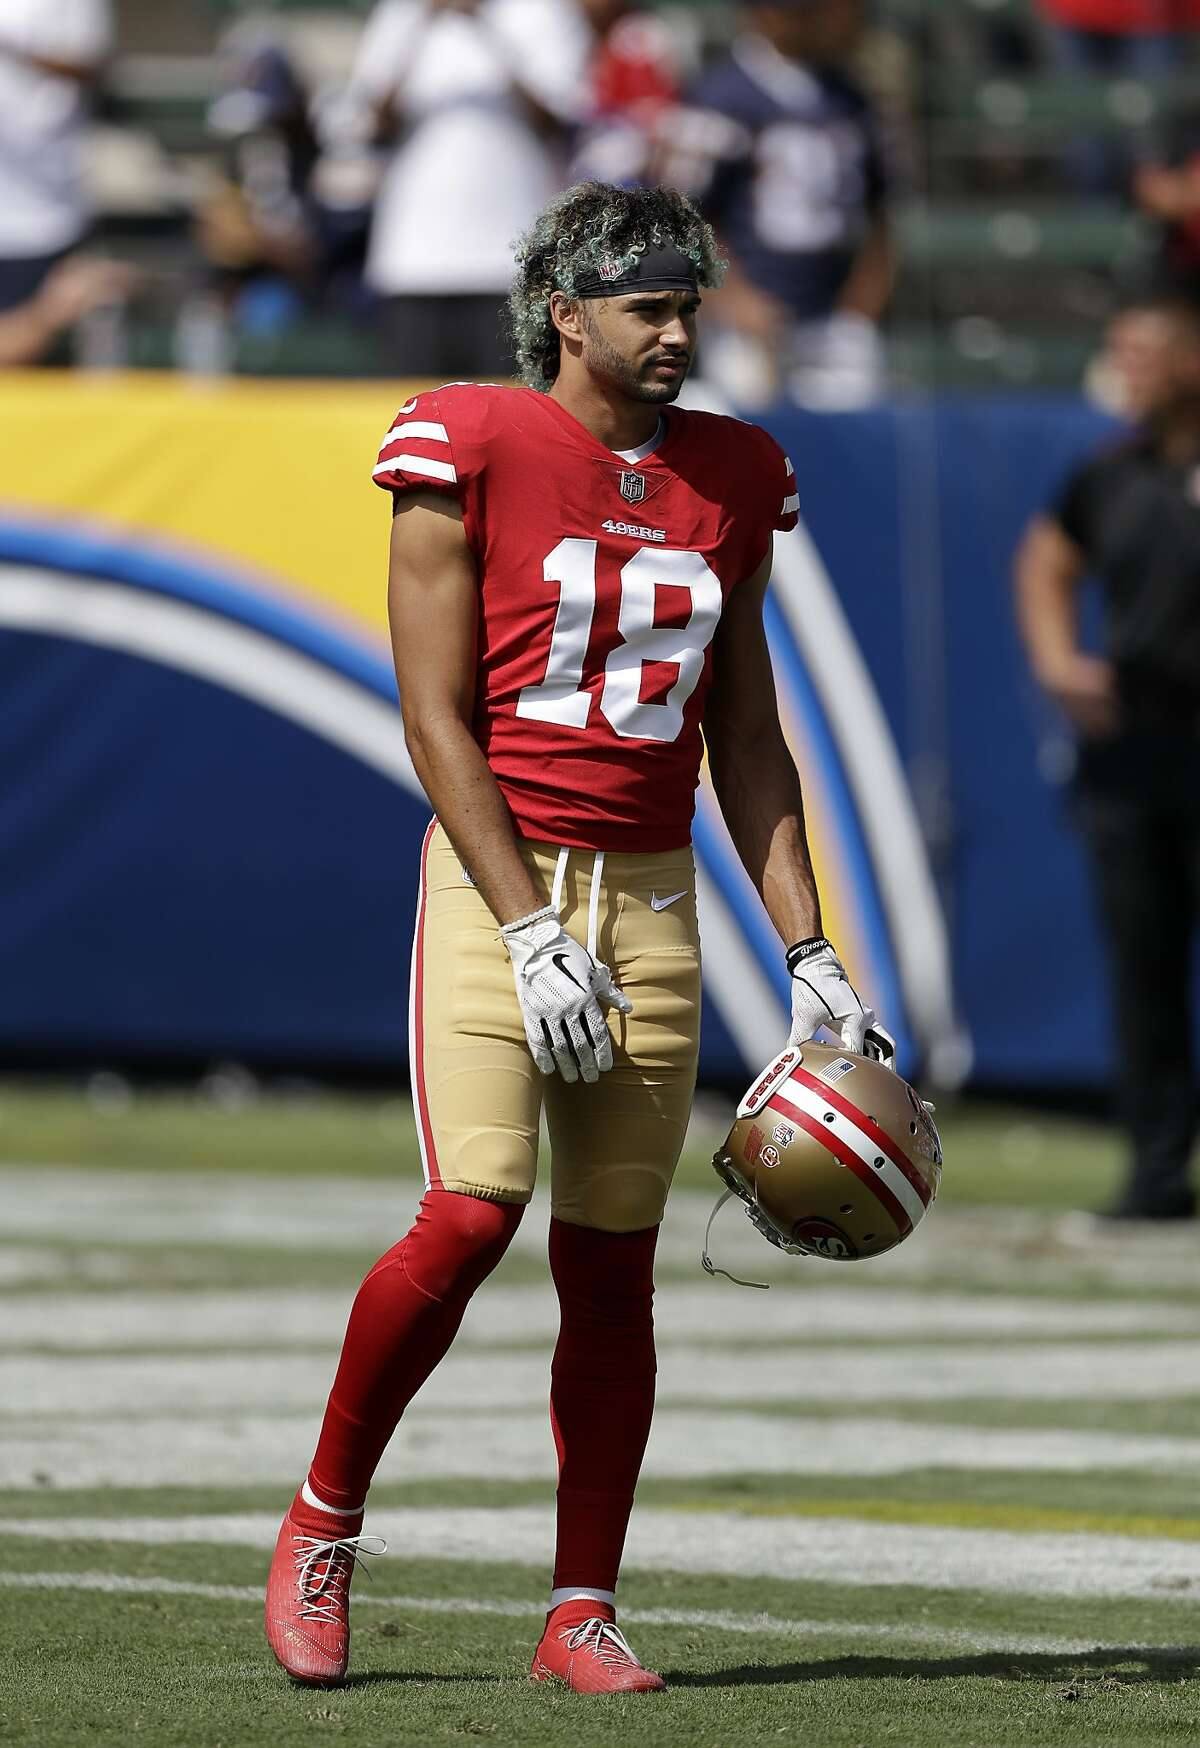 San Francisco 49ers wide receiver Dante Pettis warms up prior to an NFL football game against the Los Angeles Chargers, Sunday, Sept. 30, 2018, in Carson, Calif. (AP Photo/Marcio Sanchez)